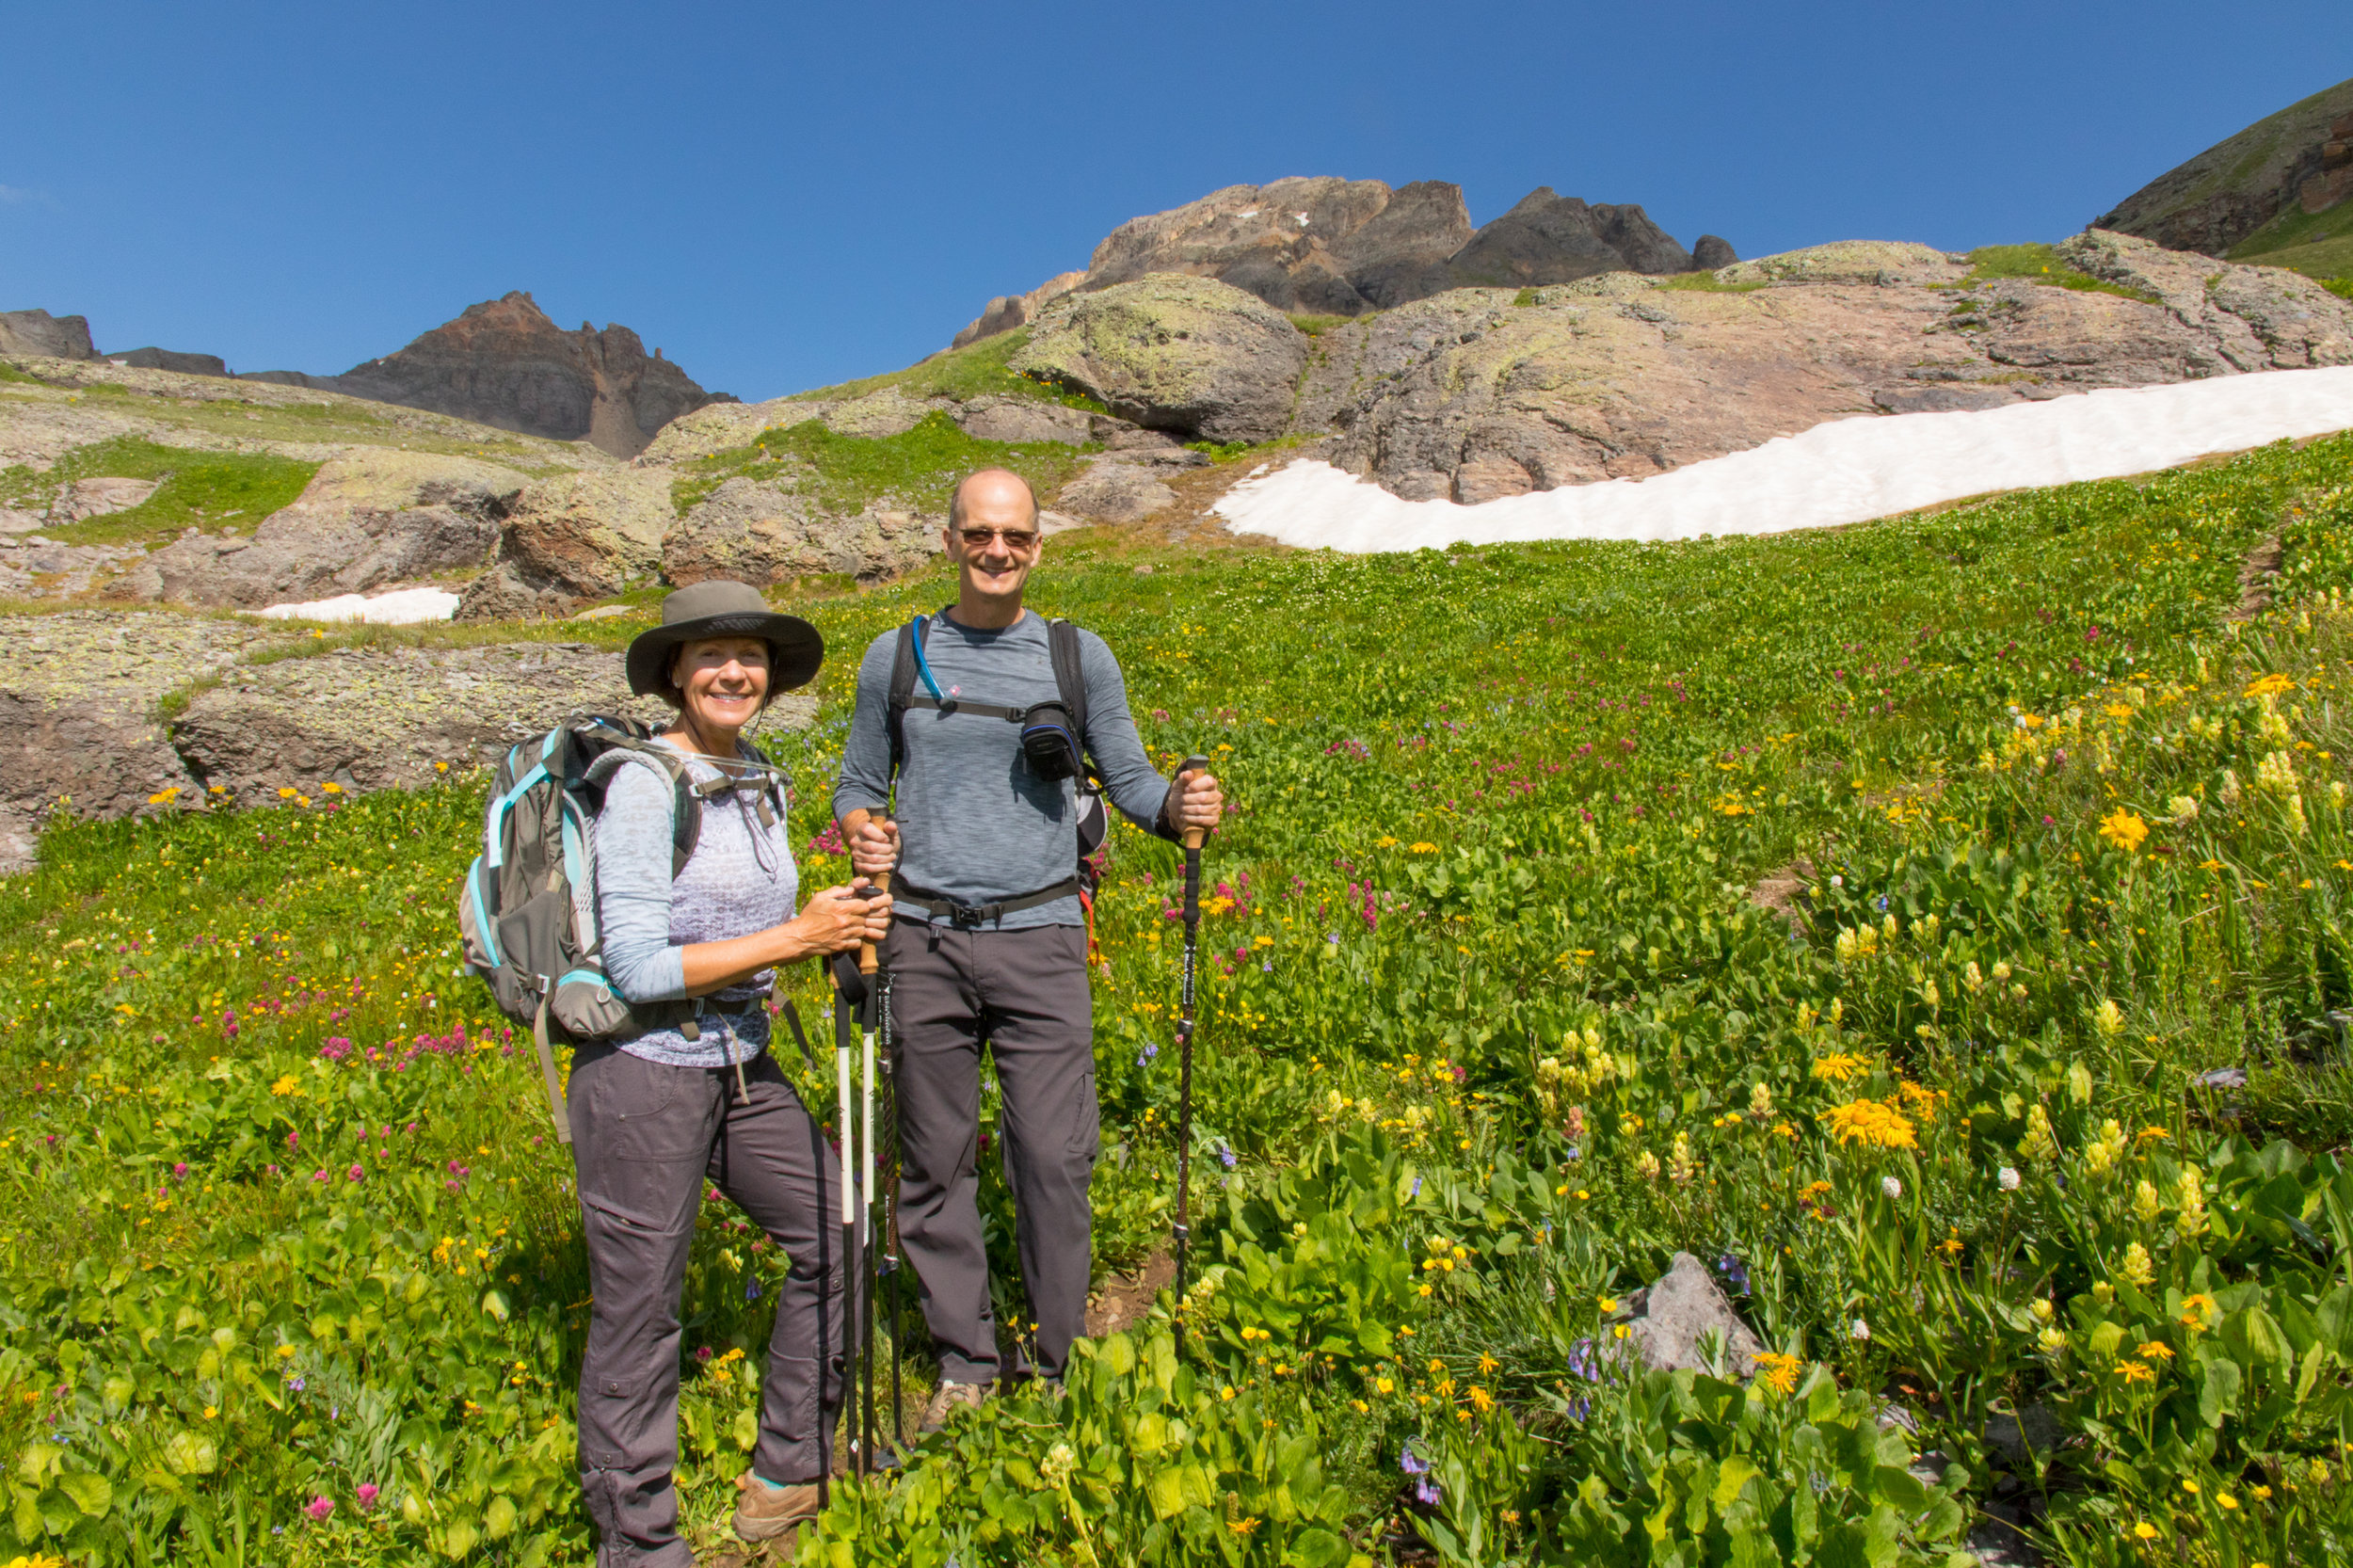 Tim & Angela Bouchard, Island Lake Hike, Image # 9112